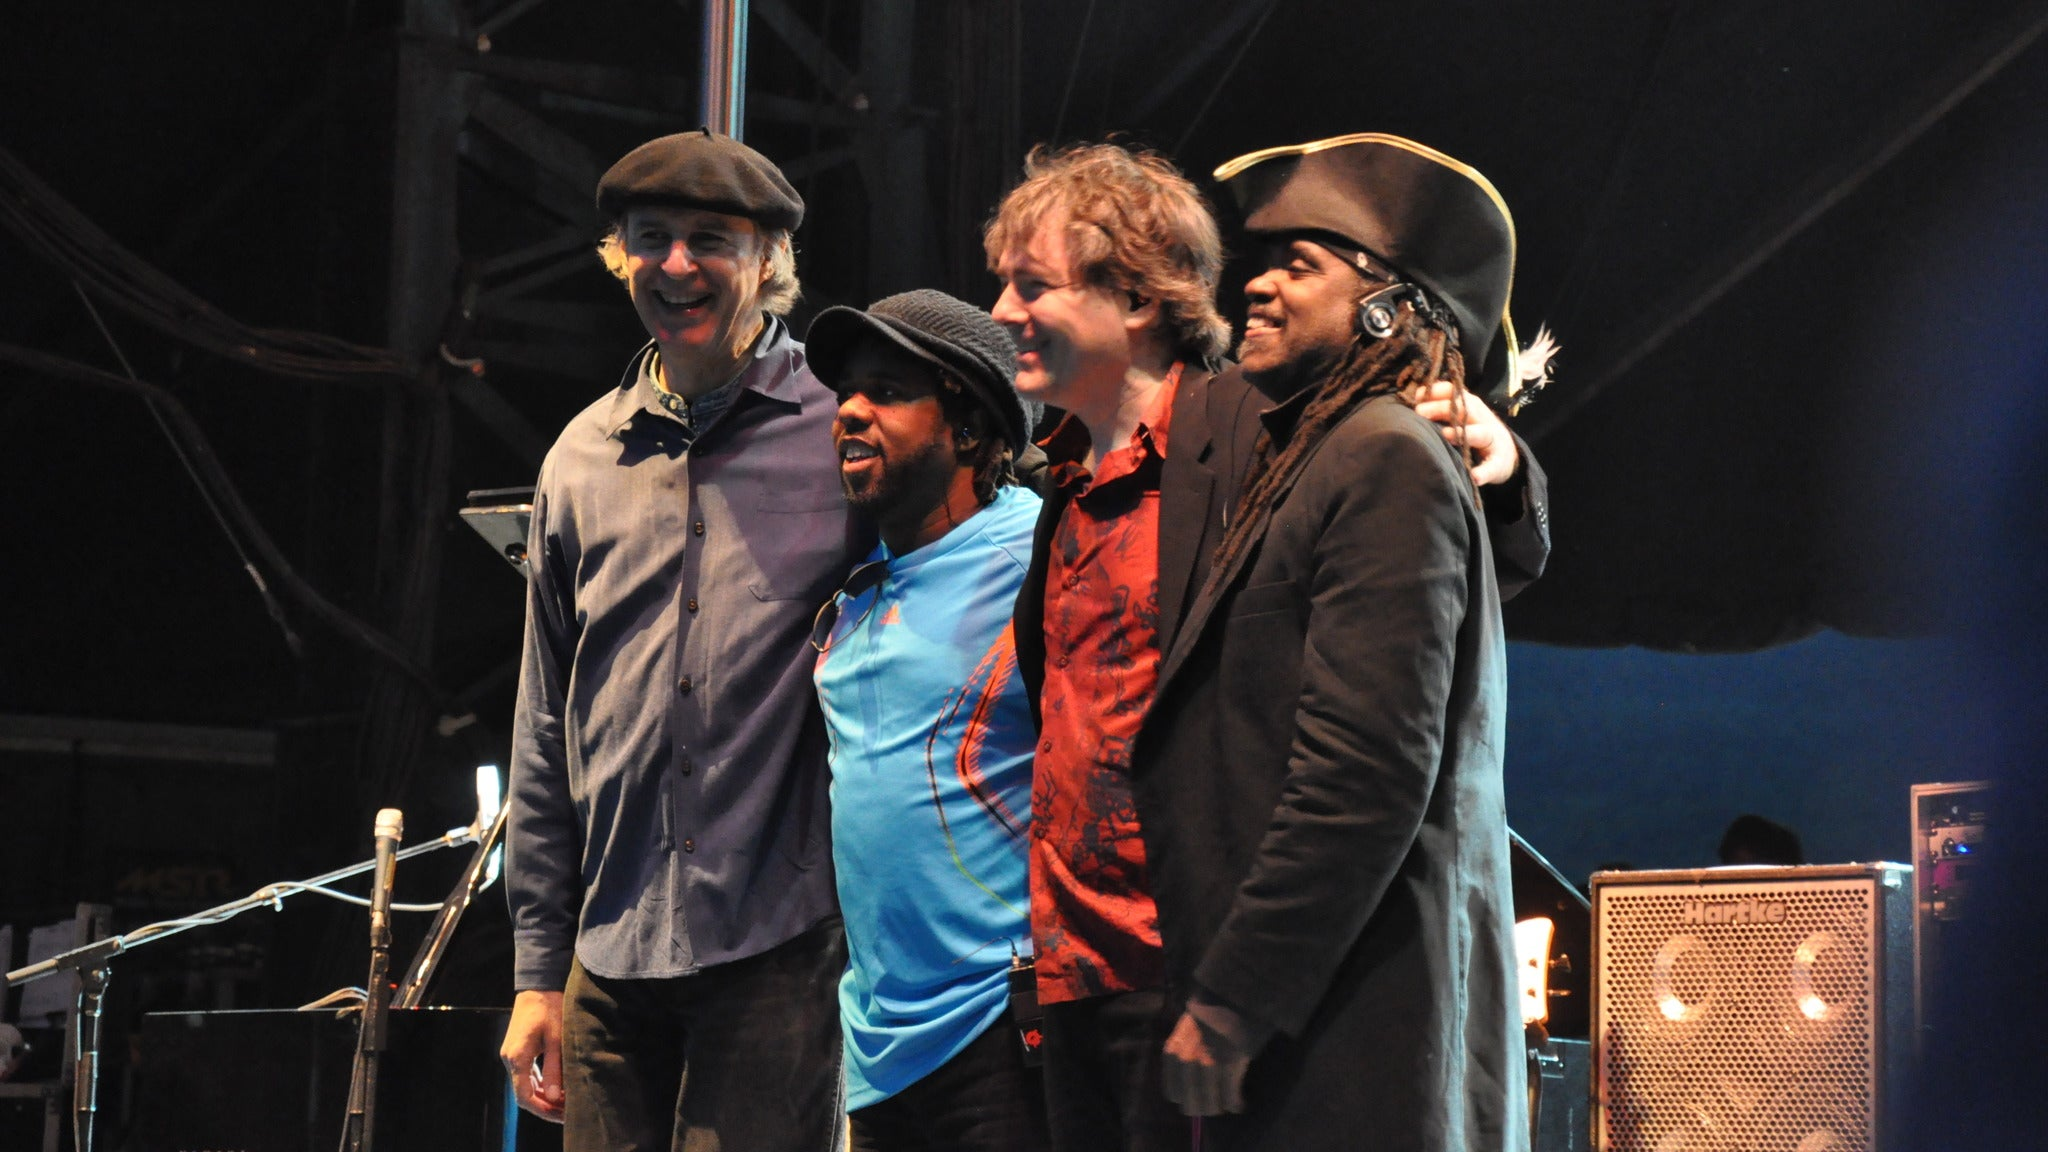 Bela Fleck & the Flecktones - 30th Anniversary Tour